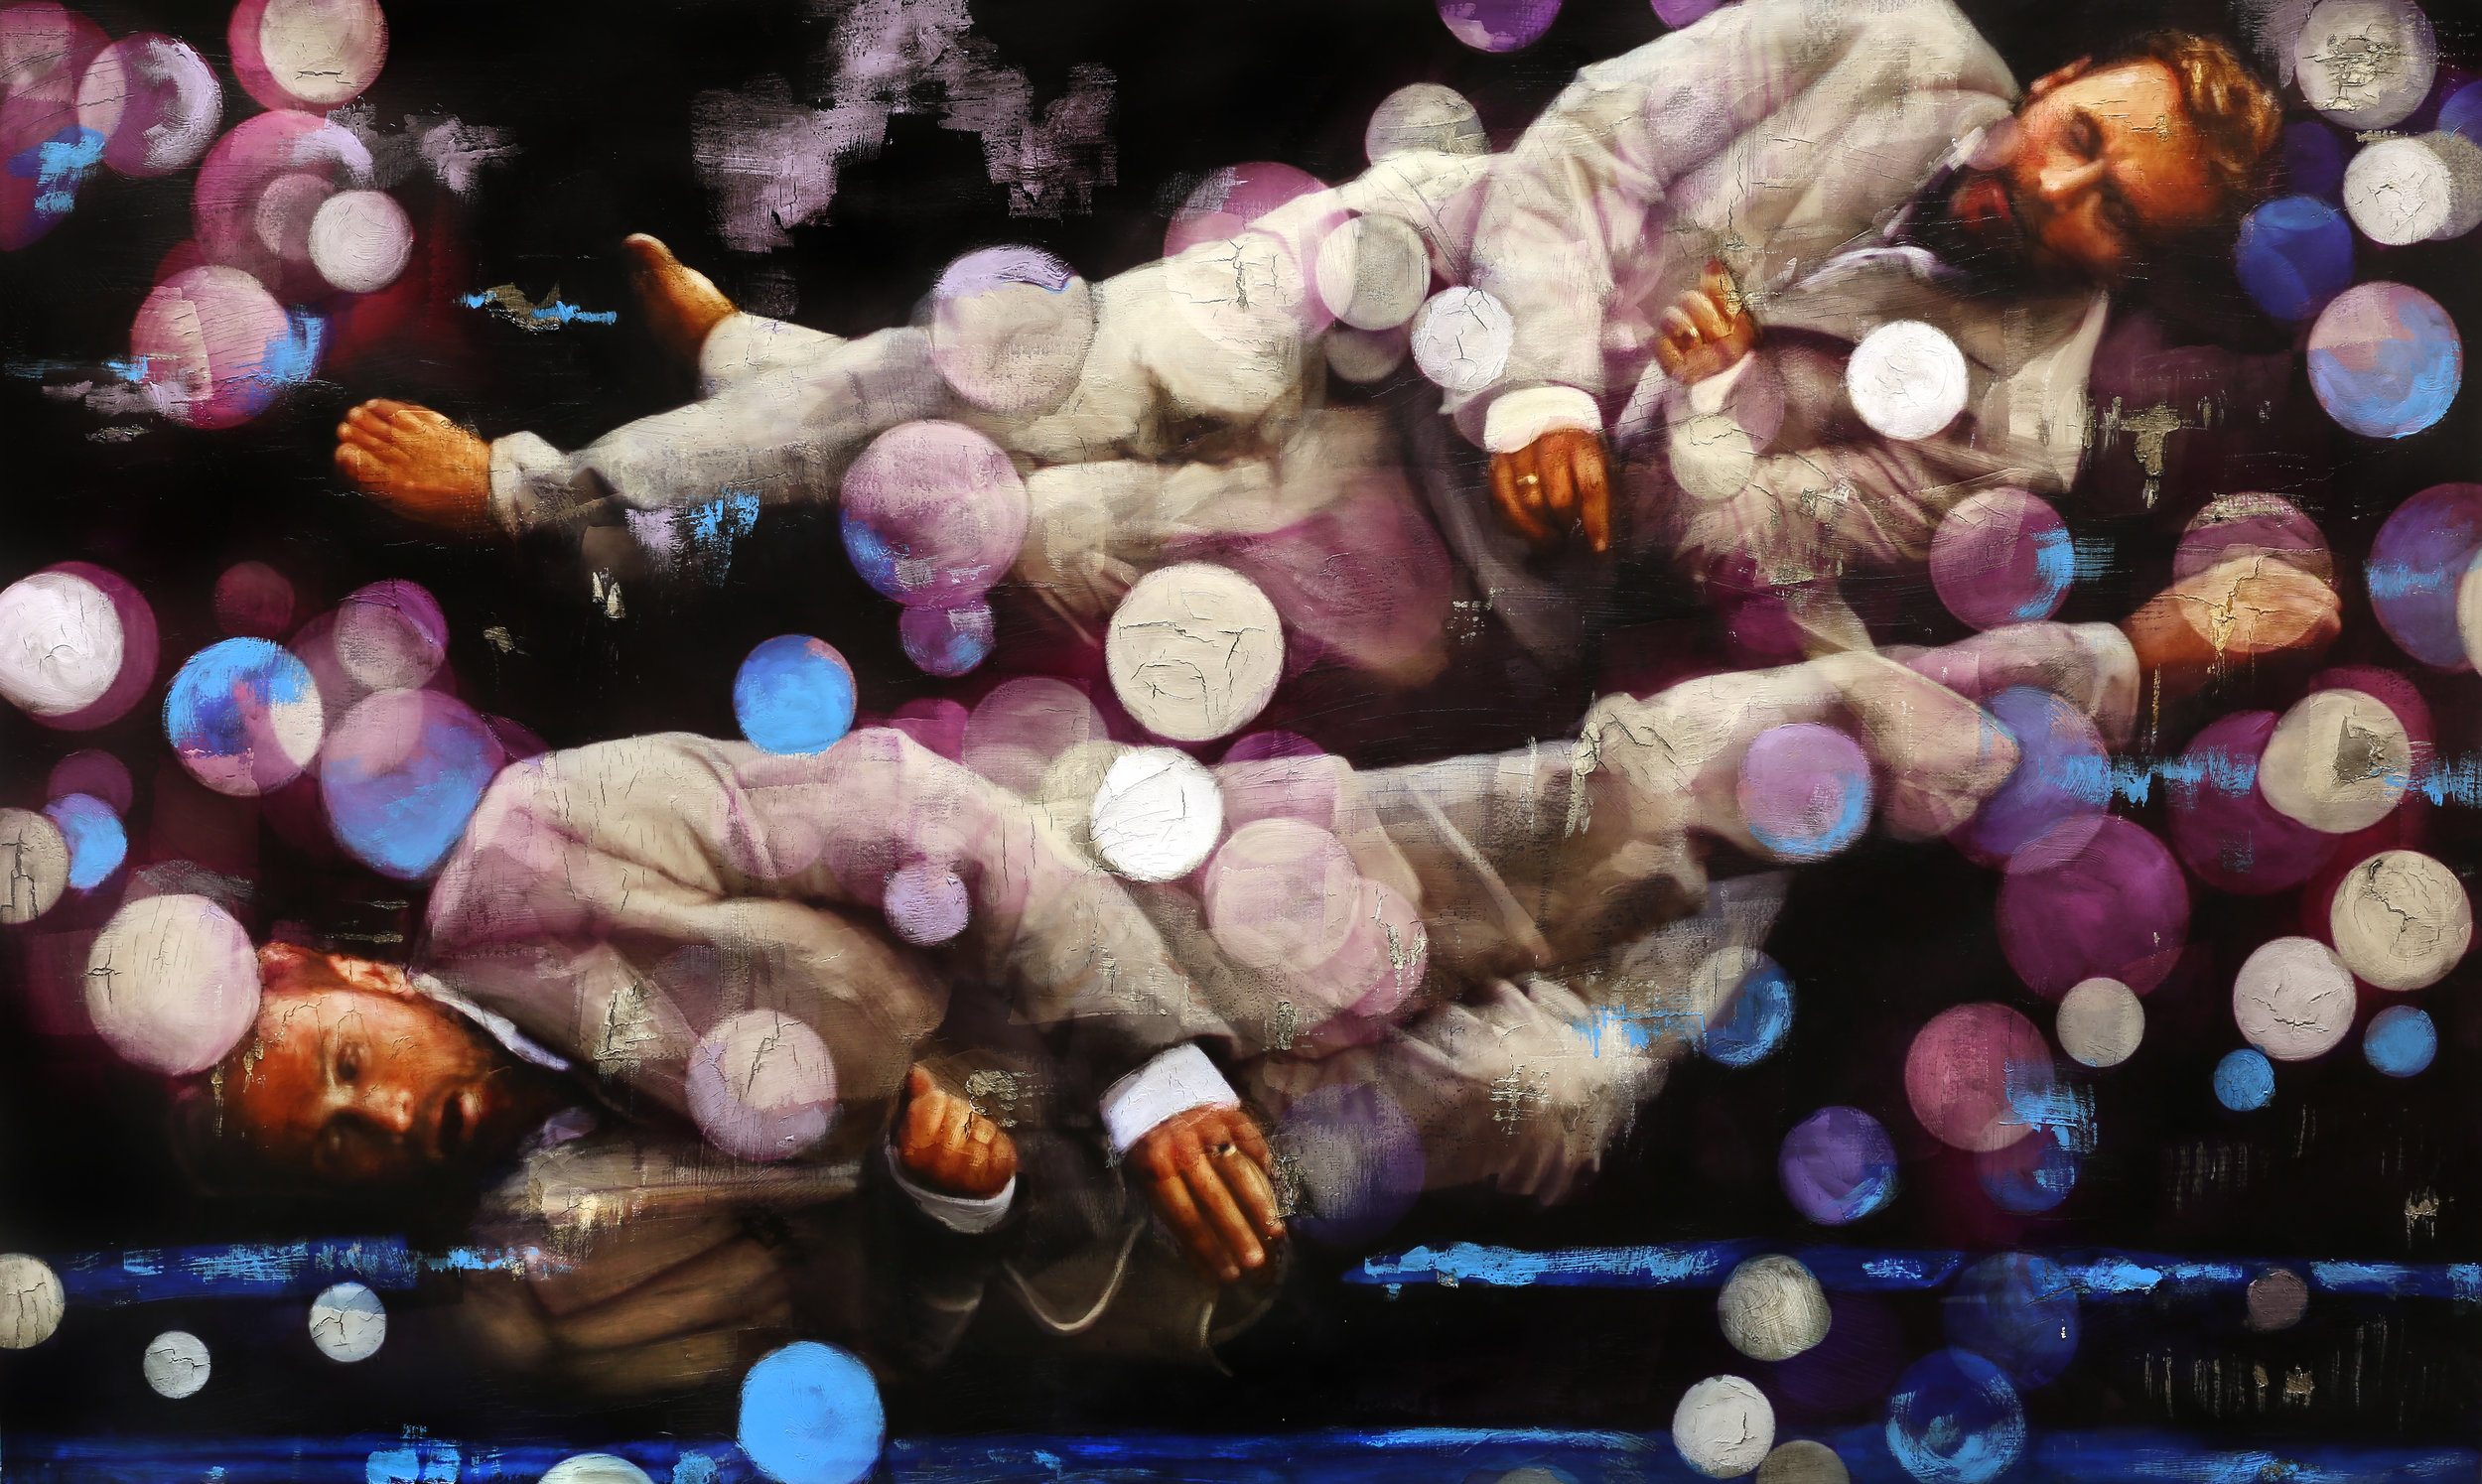 PerFronth.2016.Gravity.Bubbles.Markers.DillonLee.ArtMiami.78x47in.jpg